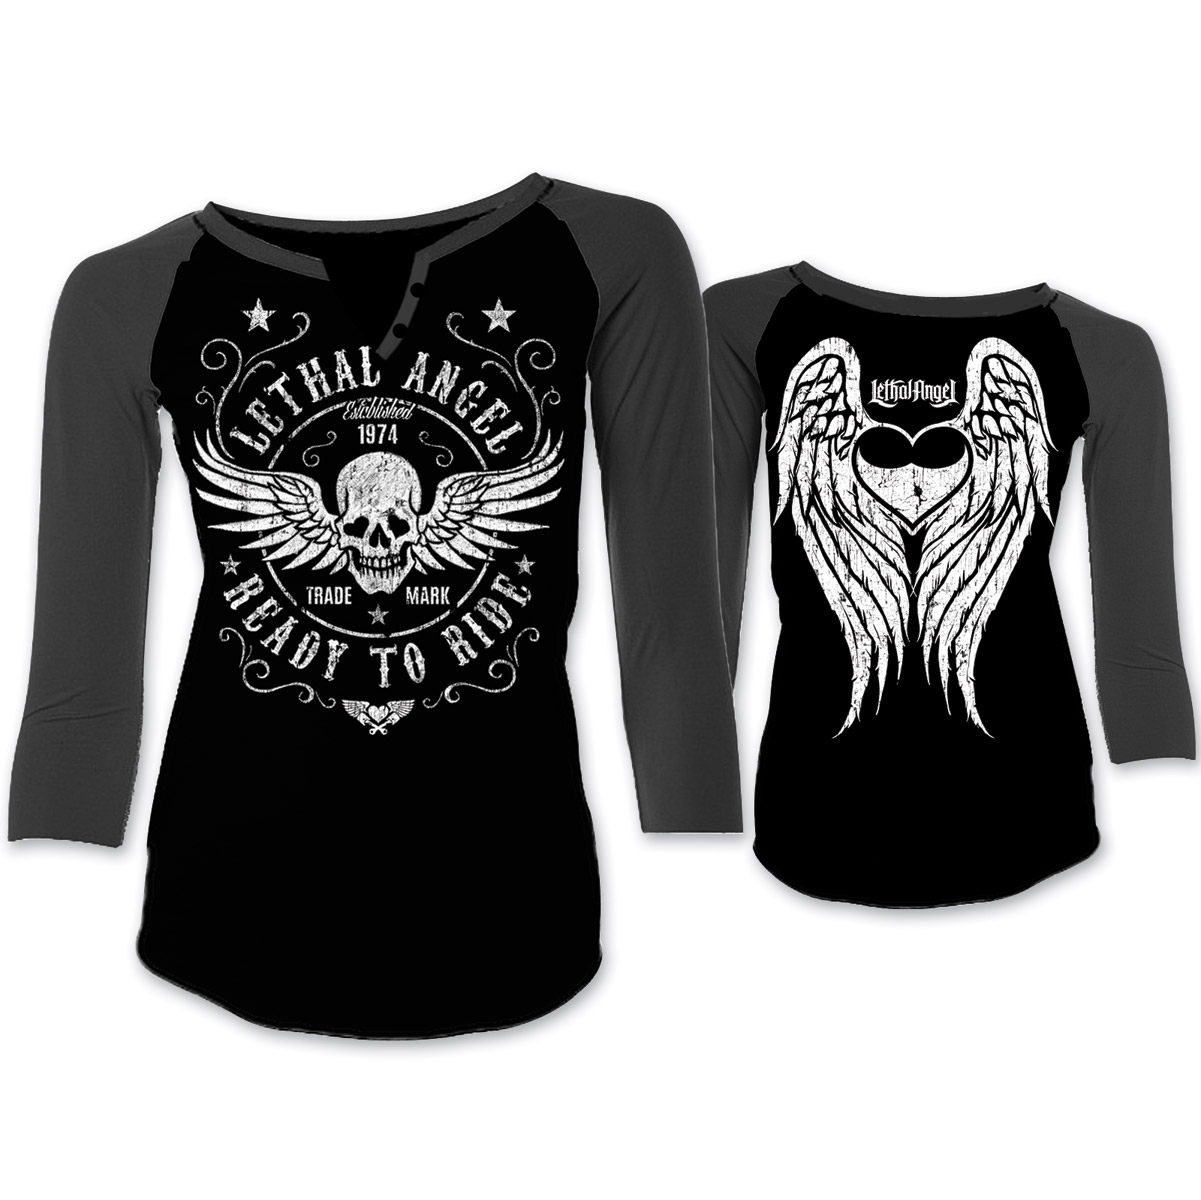 Lethal Angel Women's Ready to Ride Black/Gray Baseball Tee